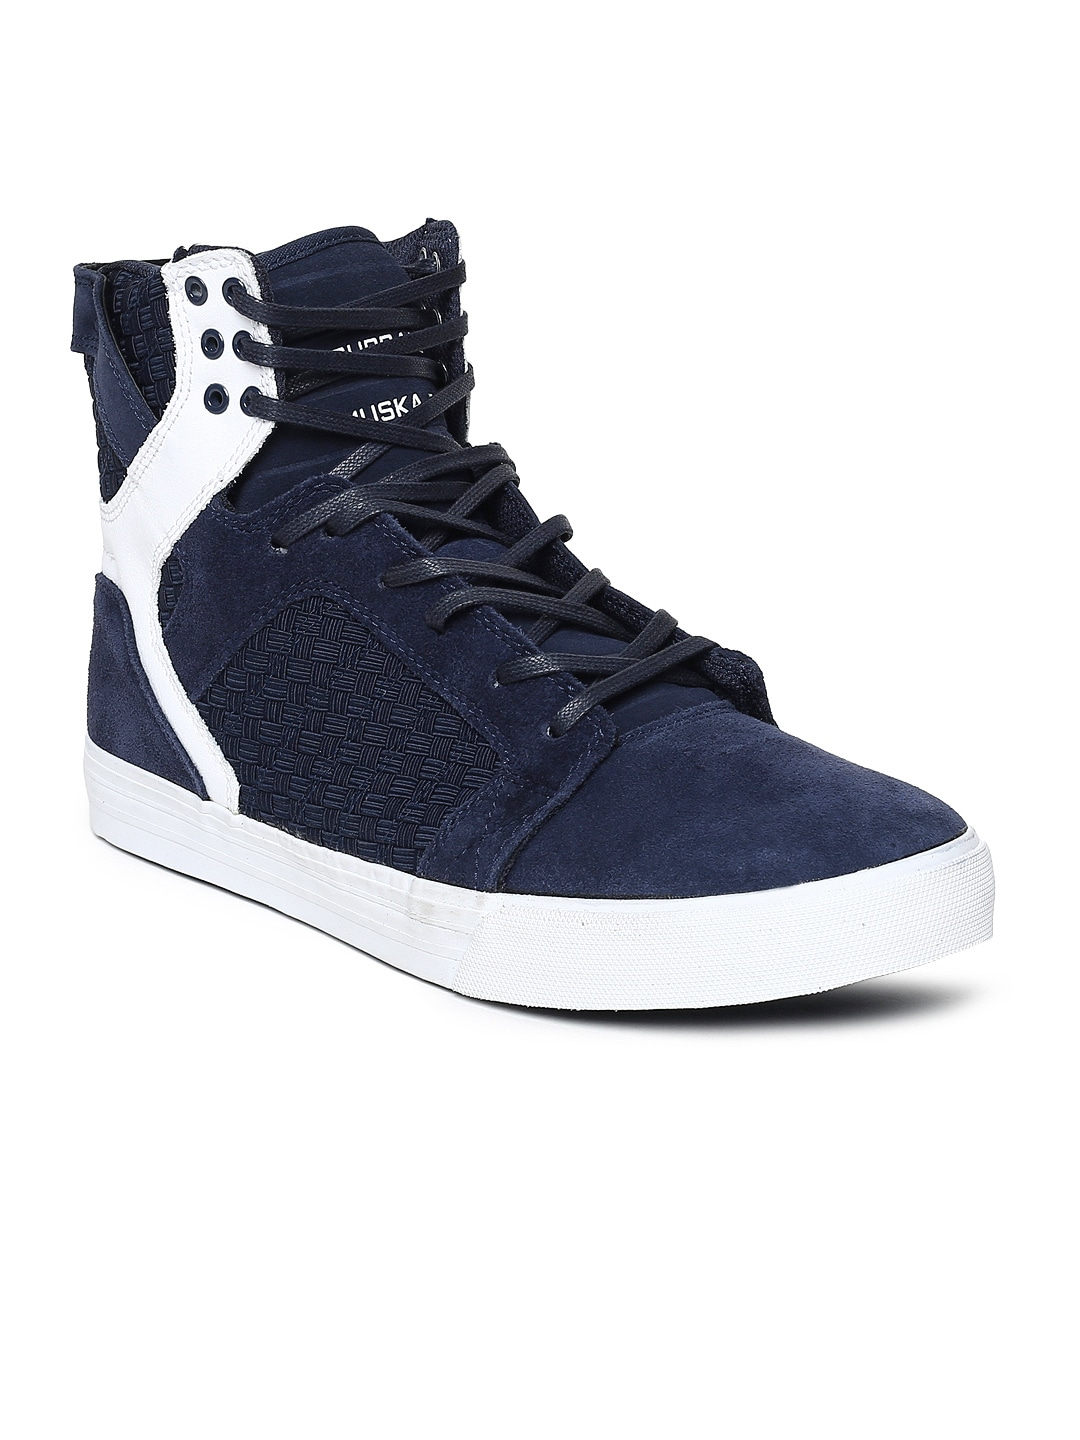 sports shoes 48917 b7556 Supra Shoes - Buy Supra Shoes   Sneakers Online in India   Myntra